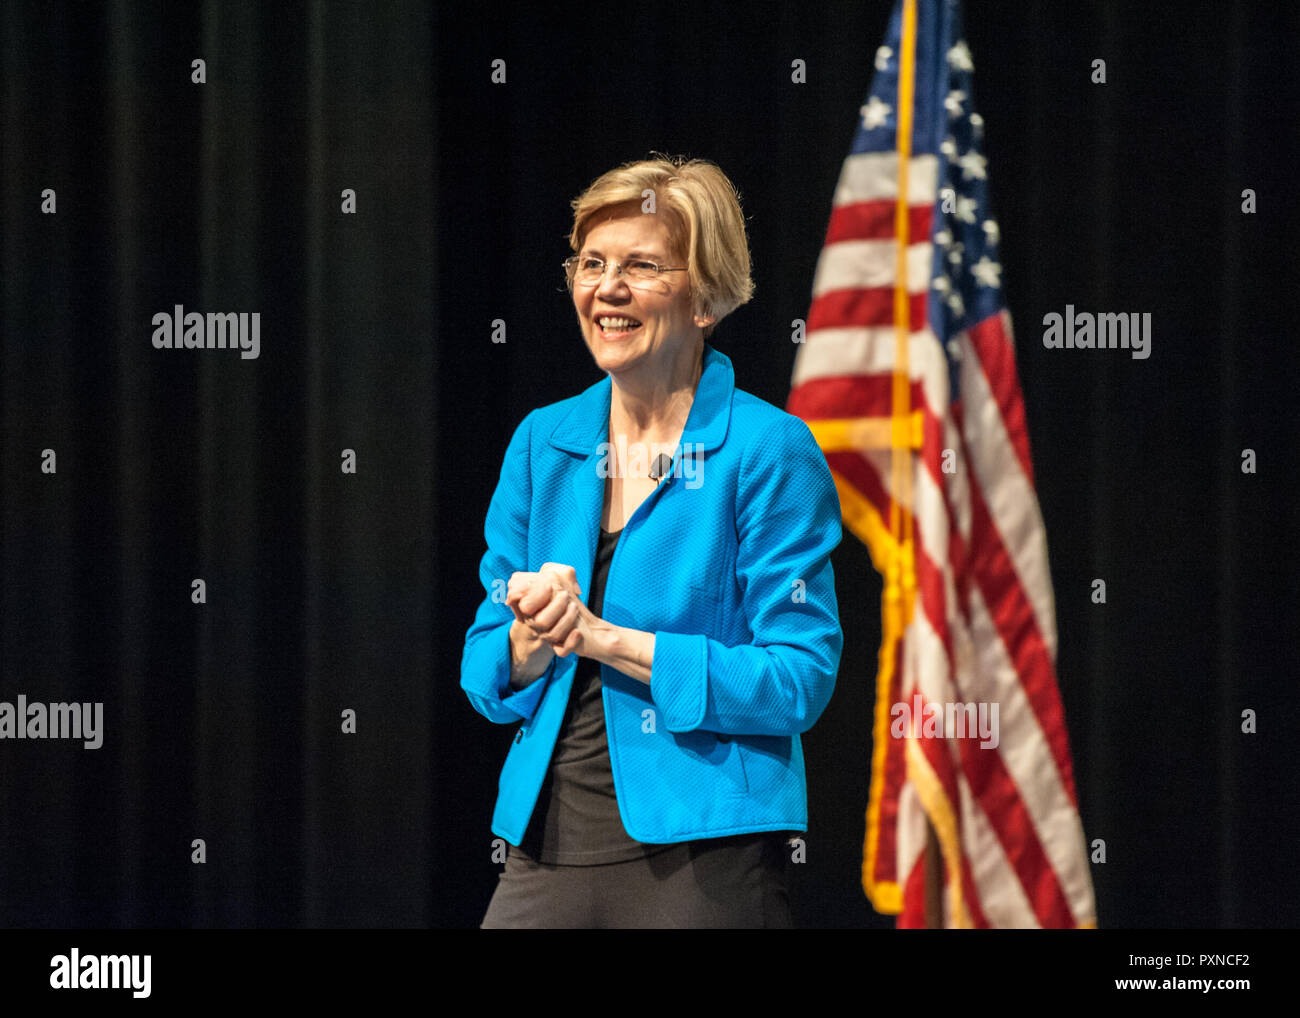 A smiling Senator Elizabeth Warren on stage at a town hall Stock Photo